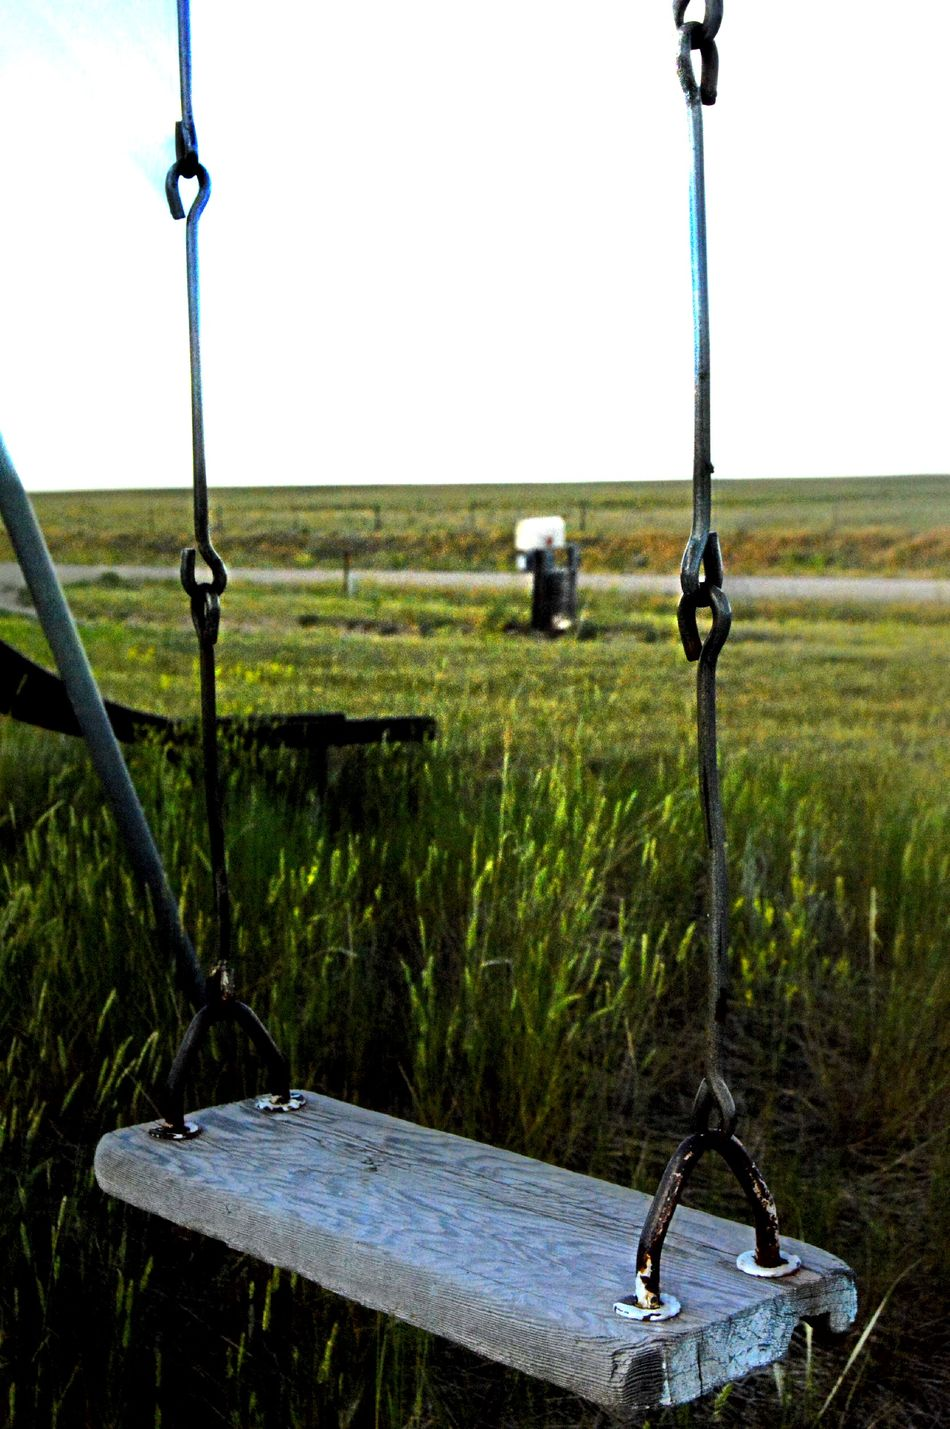 Face East Grass Still In July Hot Summer Day No People Old Swing Set Out In The Country Prairie Center Wyoming Wood Swing Seat